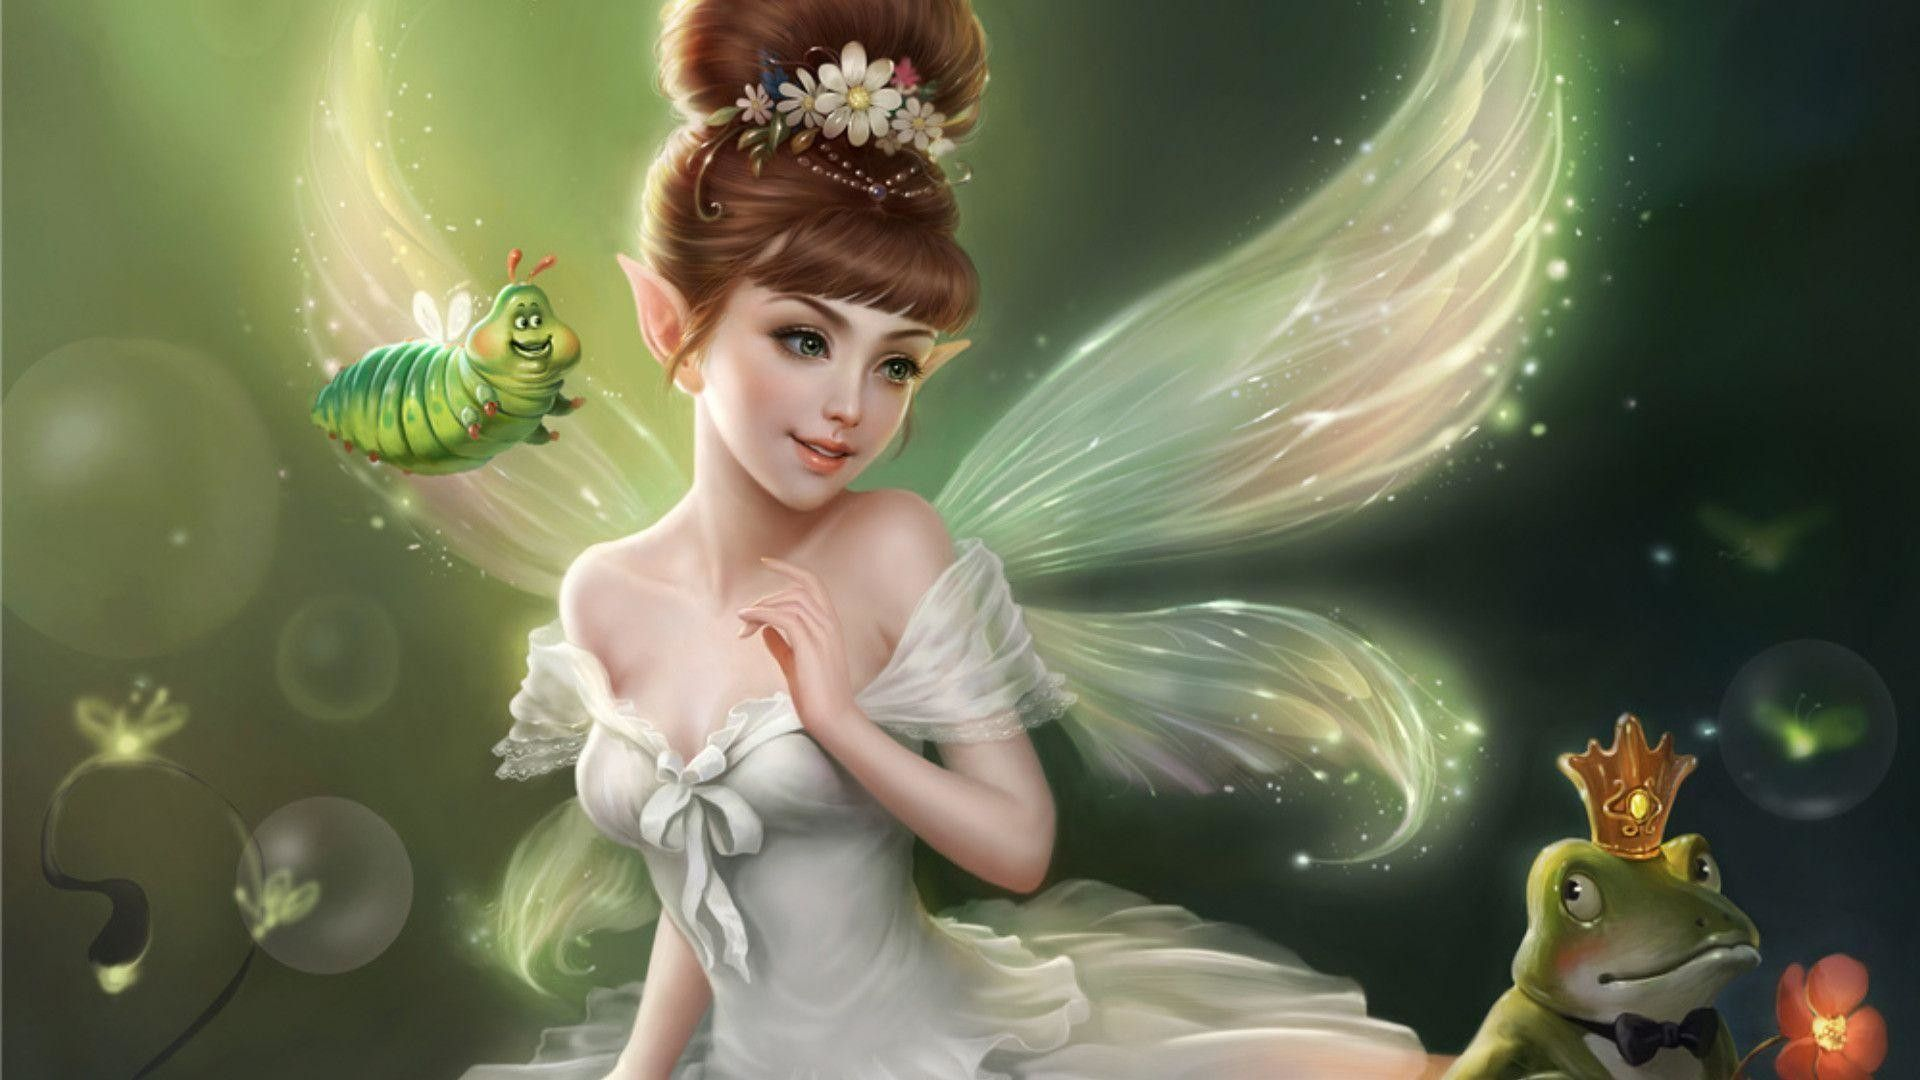 1920x1080 70+ Hd Fairy Wallpapers on WallpaperPlay